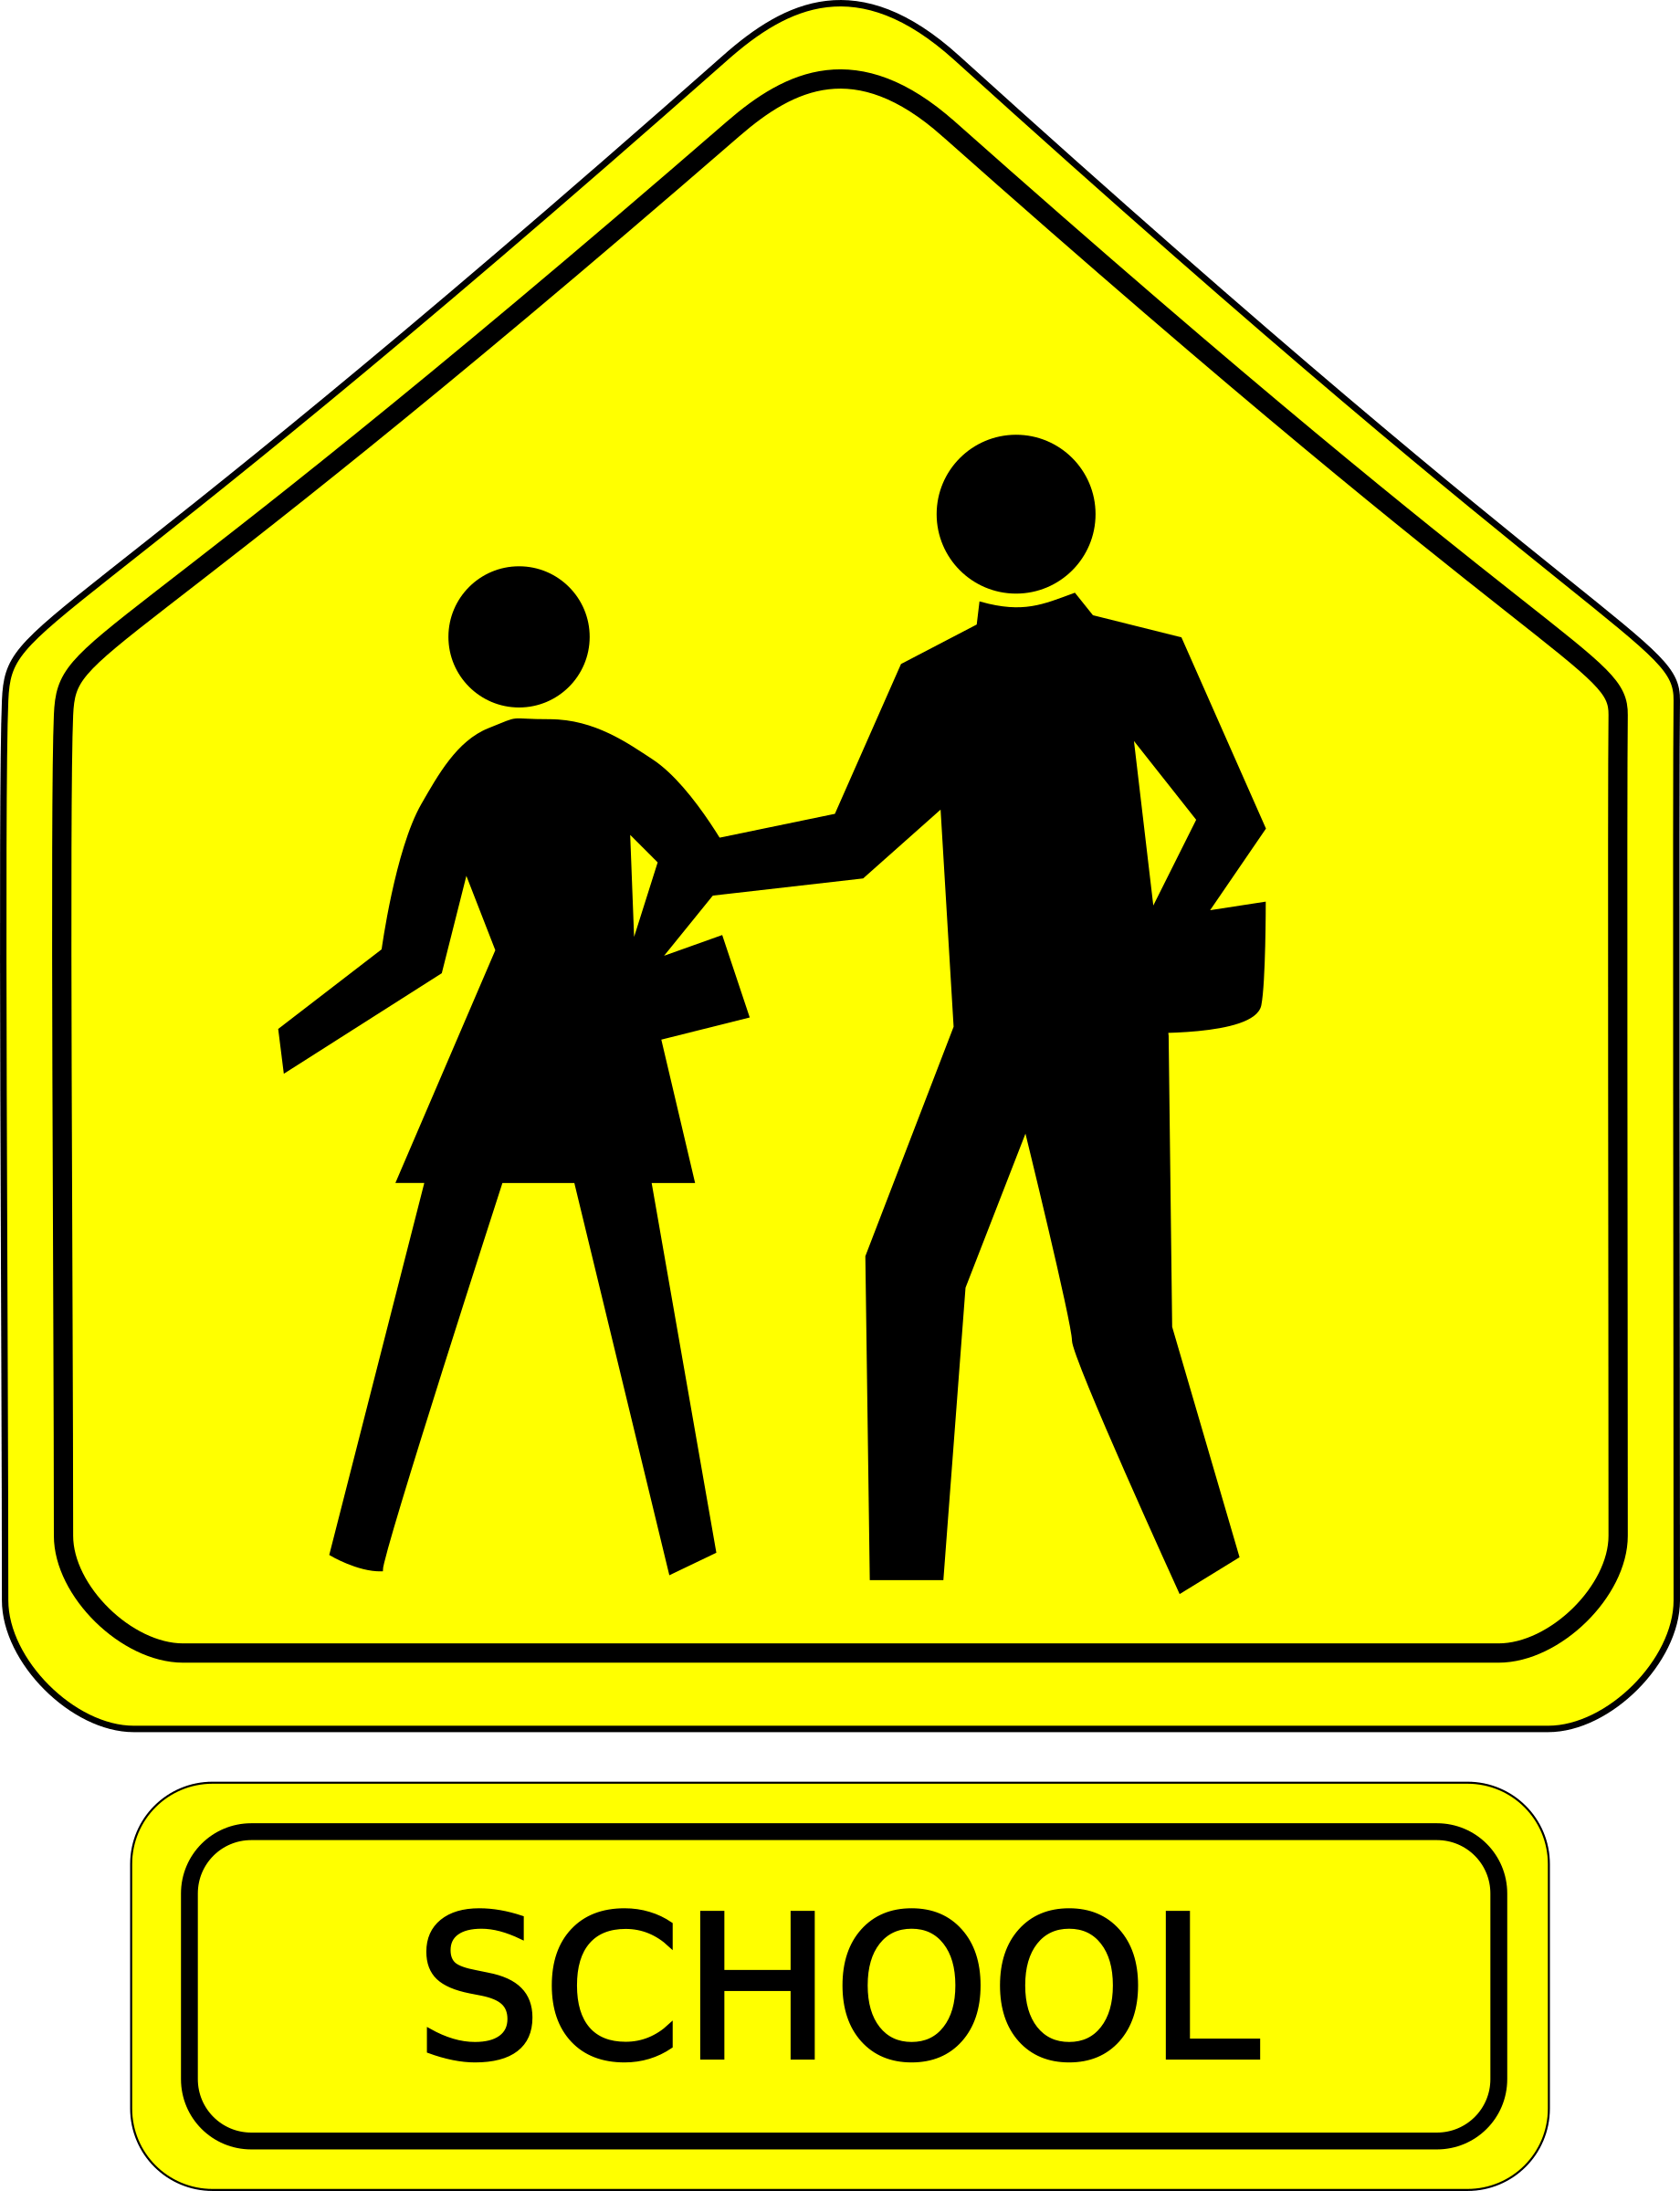 Zone signage on ne. Safe clipart school guard